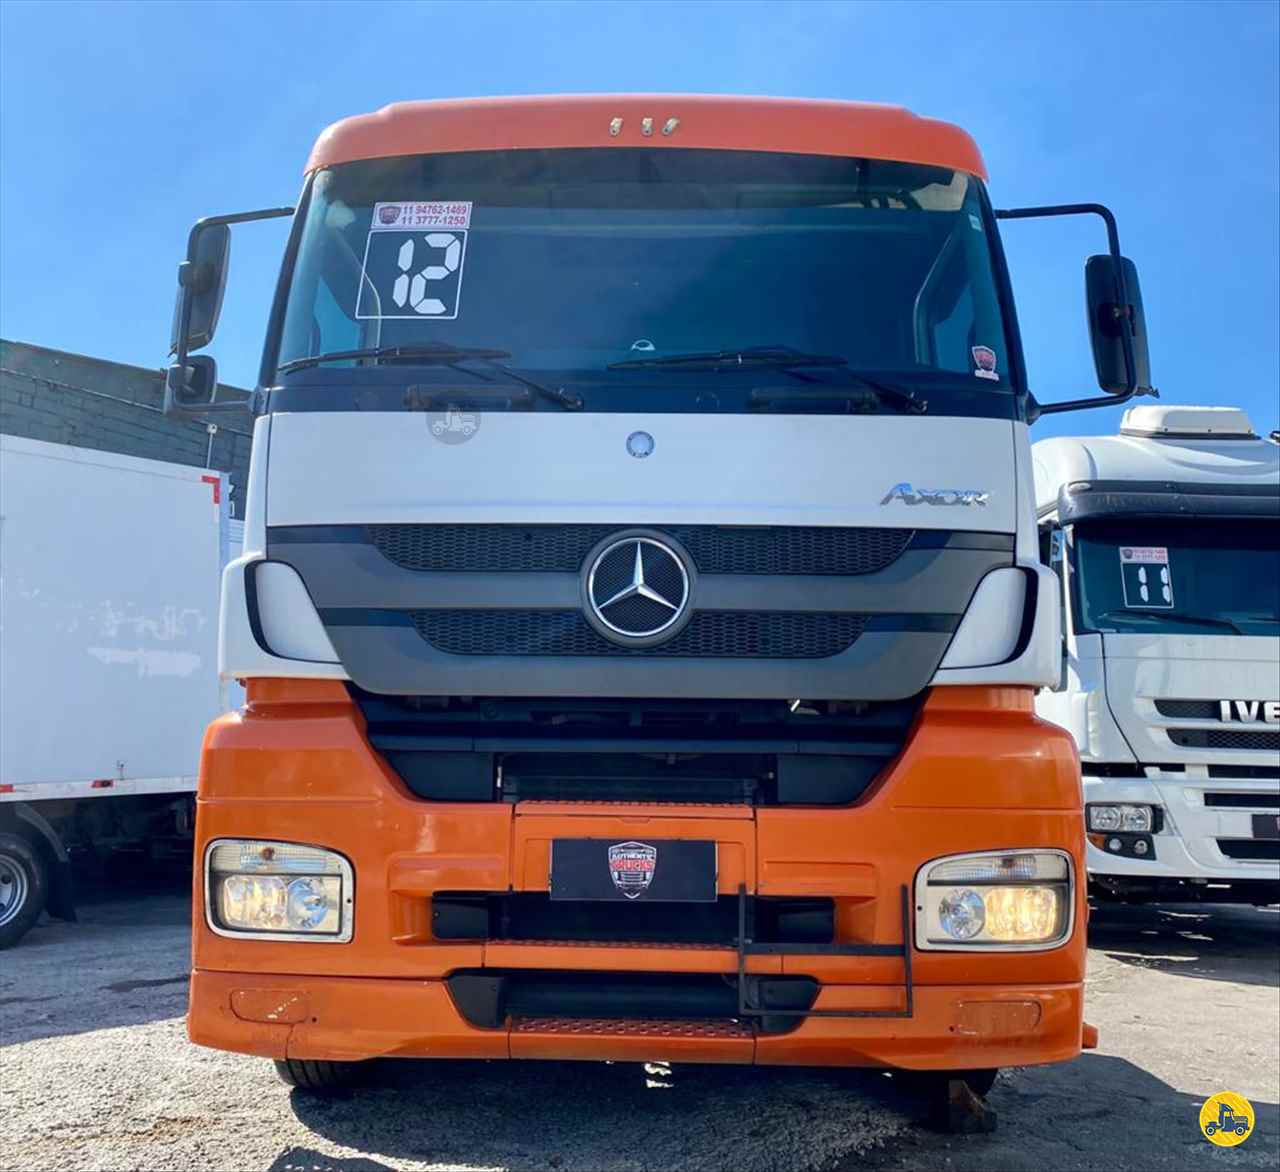 CAMINHAO MERCEDES-BENZ MB 2544 Chassis Truck 6x2 Authentic Trucks SAO PAULO SÃO PAULO SP